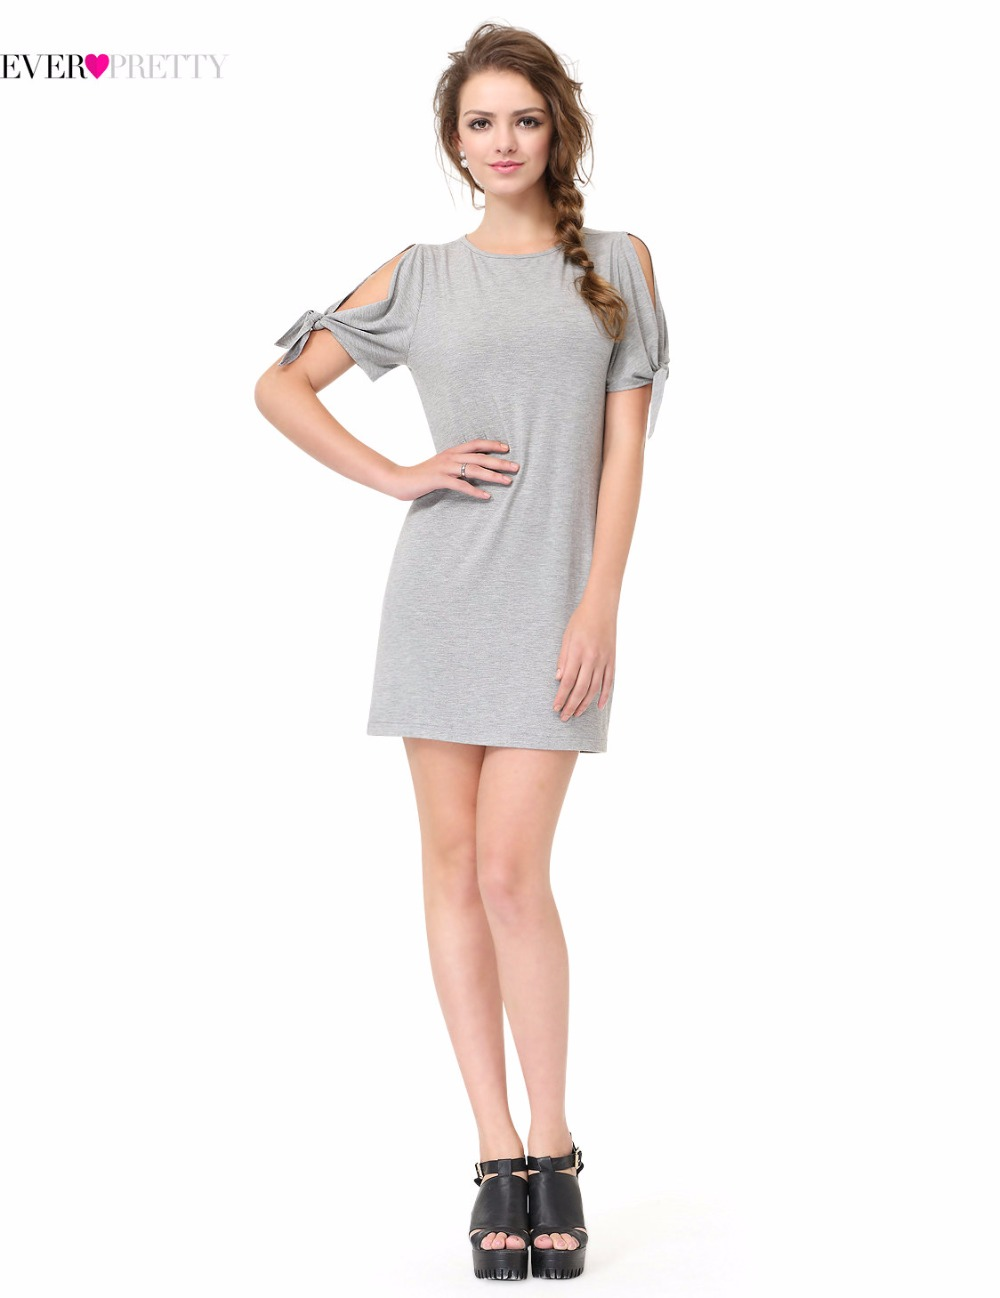 Clearance sale simple fashion cocktail dresses ever pretty clearance sale simple fashion cocktail dresses ever pretty xx80010pab round neck loose and comfy straight grey dress in cocktail dresses from weddings ombrellifo Choice Image